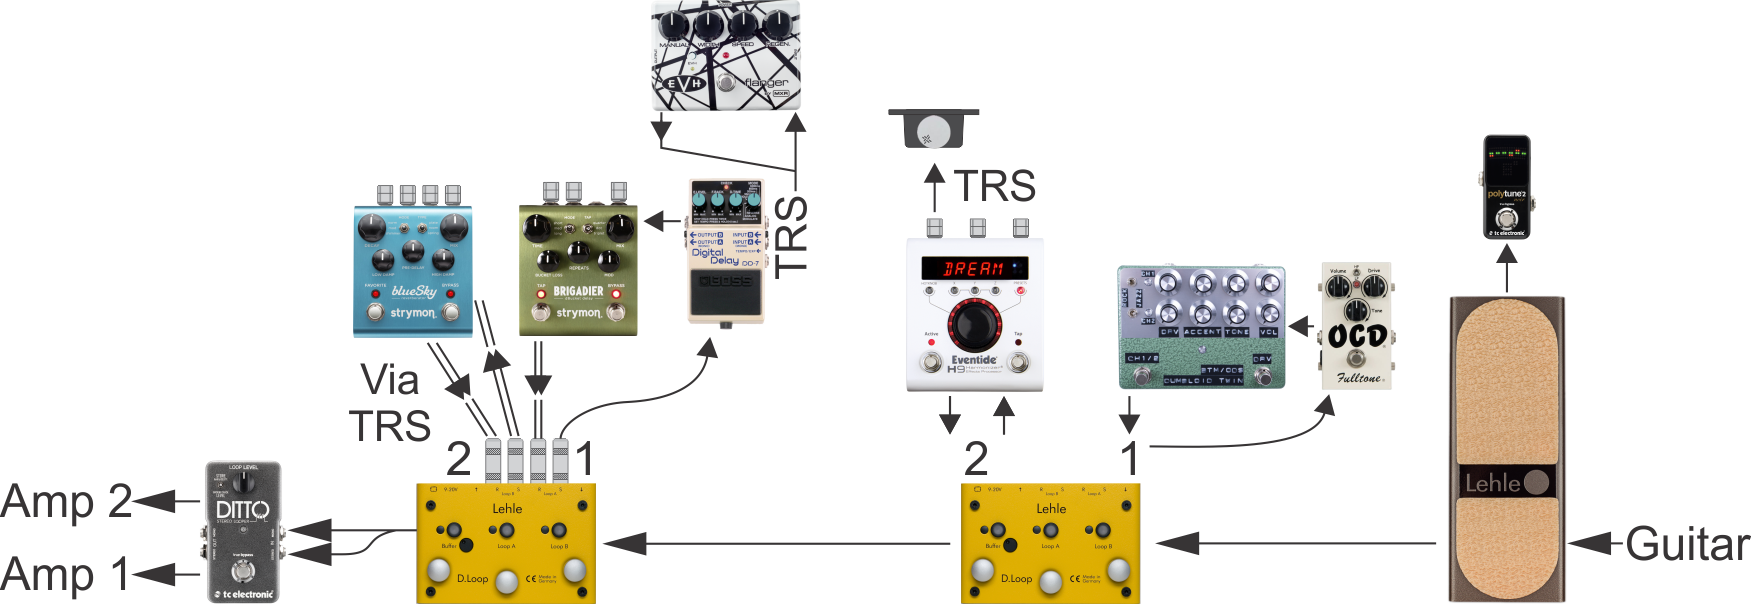 Custom pedalboard signal chain diagram